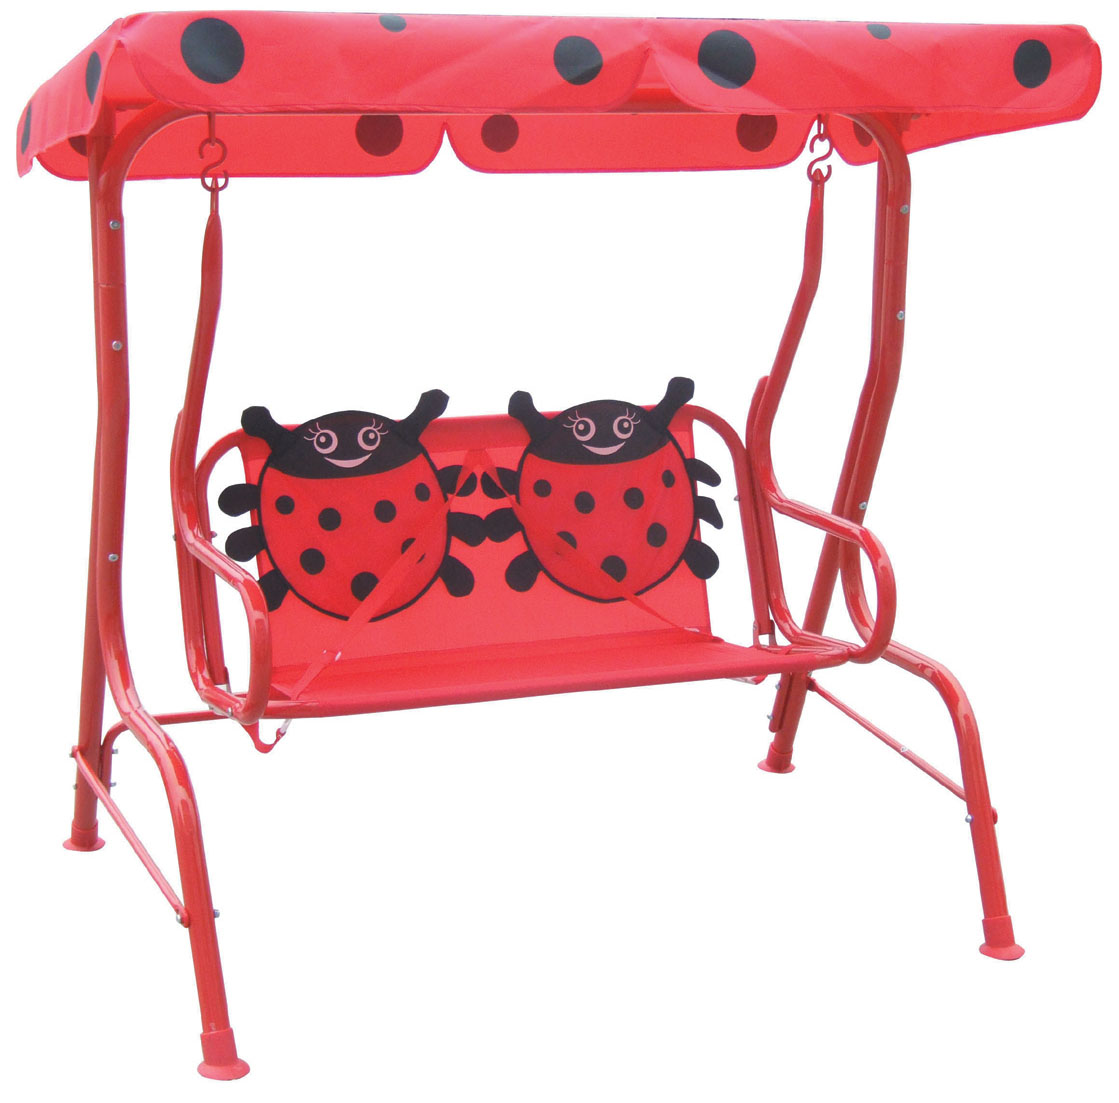 Strange Far East Brokers Recalls Ladybug Themed Kids Outdoor Download Free Architecture Designs Scobabritishbridgeorg